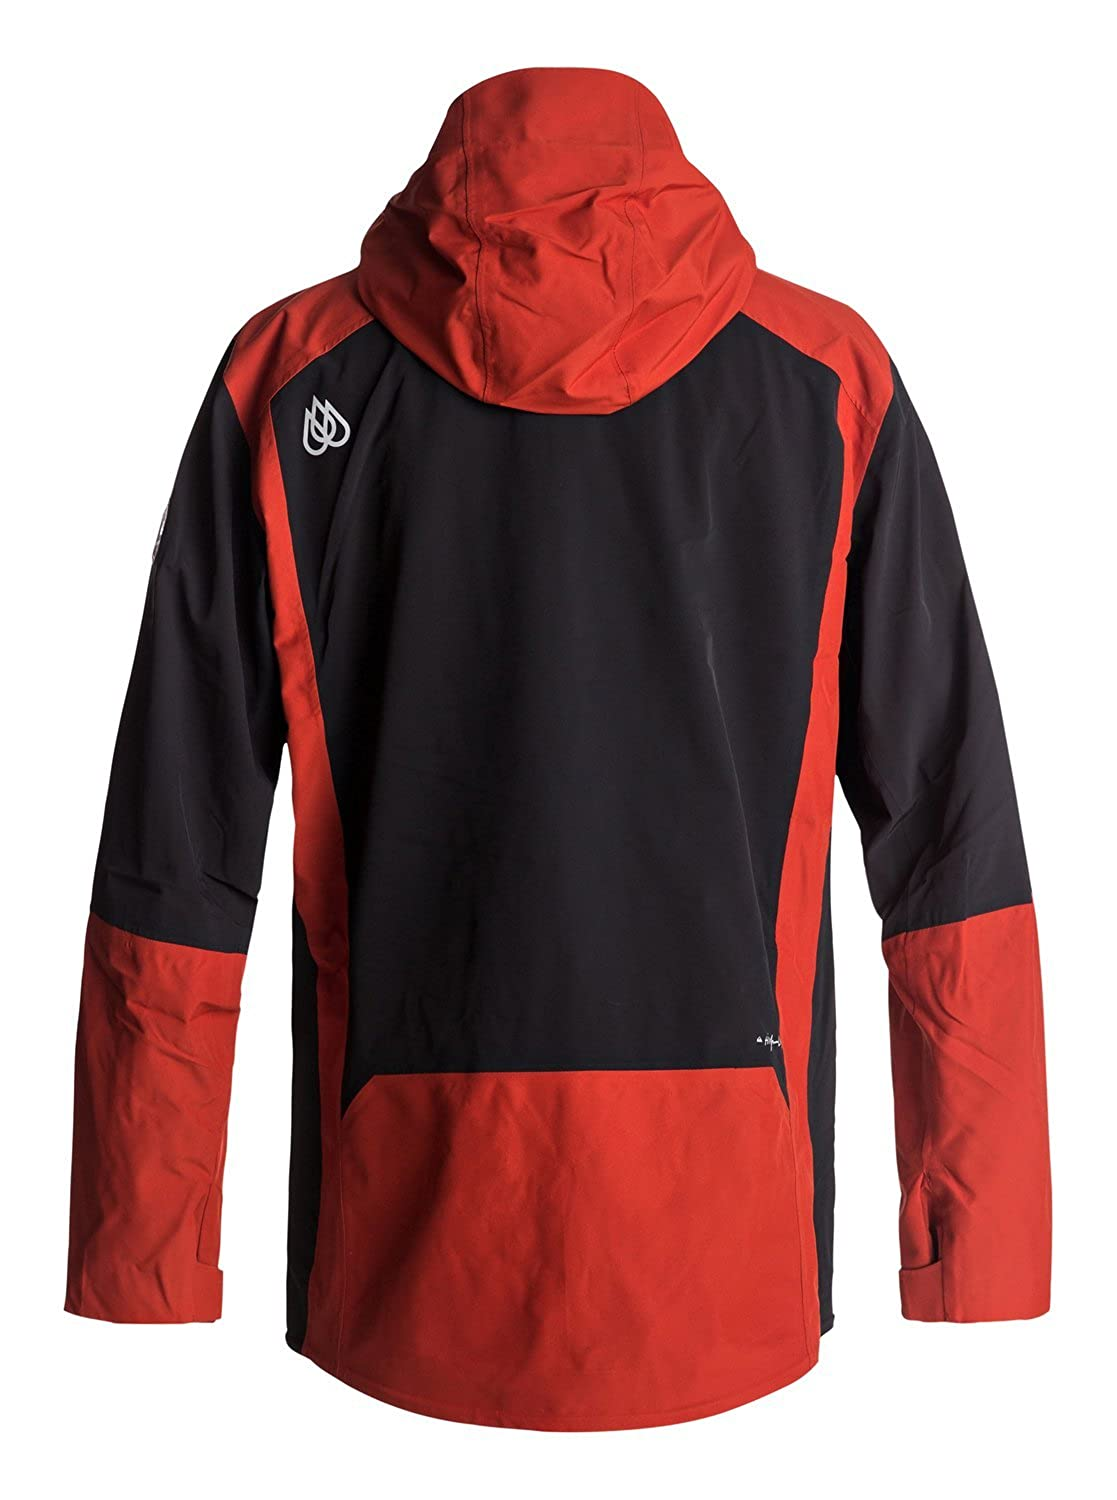 Quiksilver Mens Travis Rice Stretch Snowboard Ski Jacket